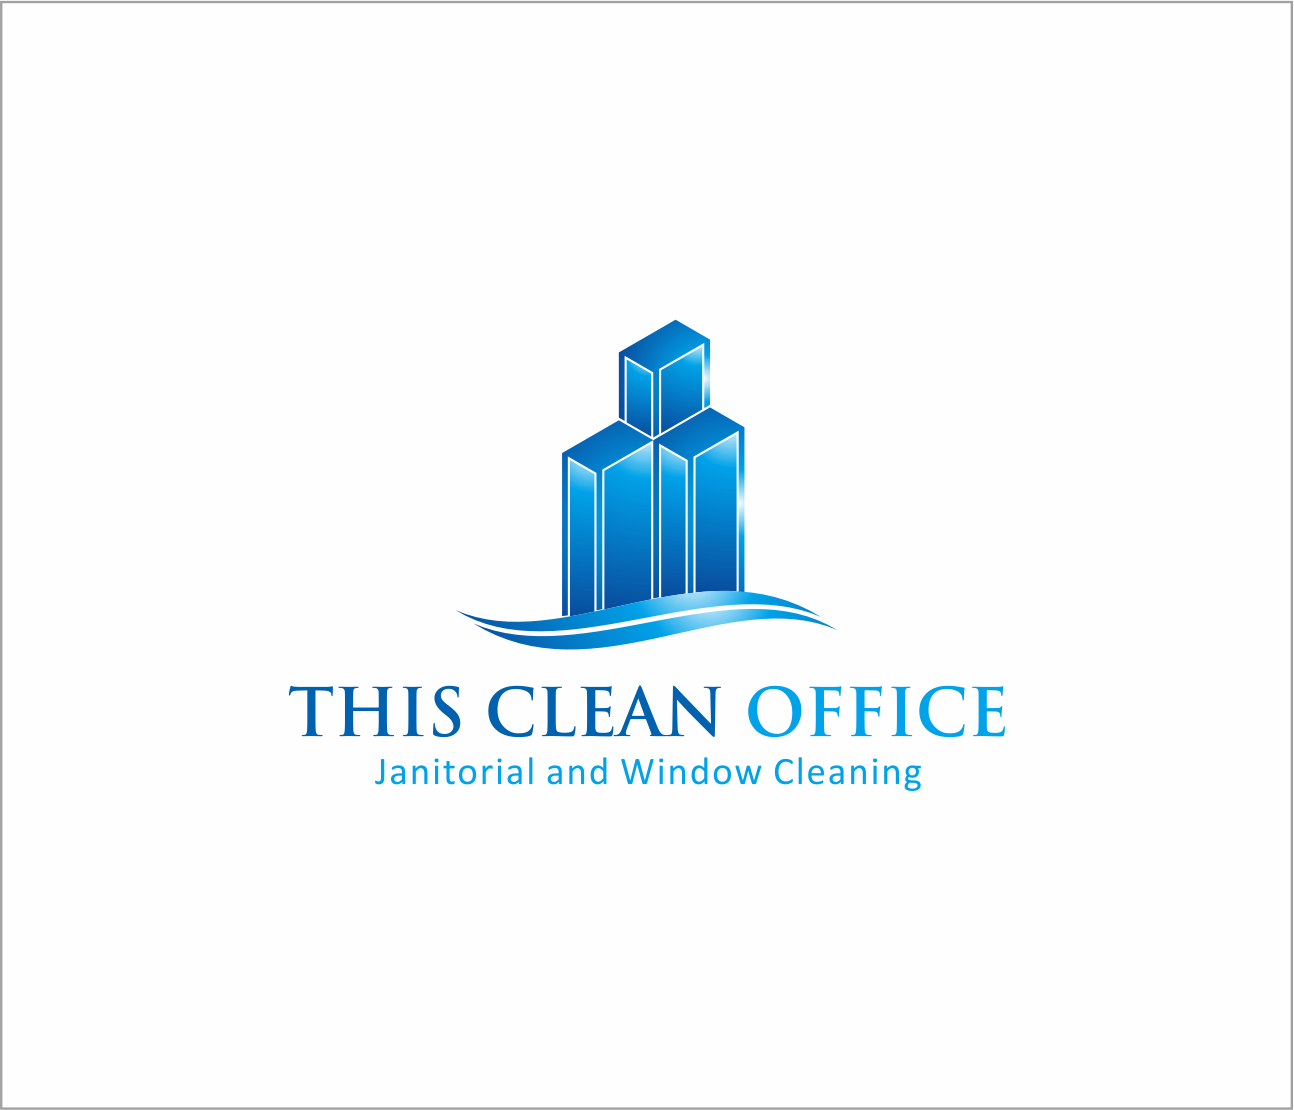 Logo Design by Armada Jamaluddin - Entry No. 44 in the Logo Design Contest Professional and Unforgettable Logo Design for This Clean Office.